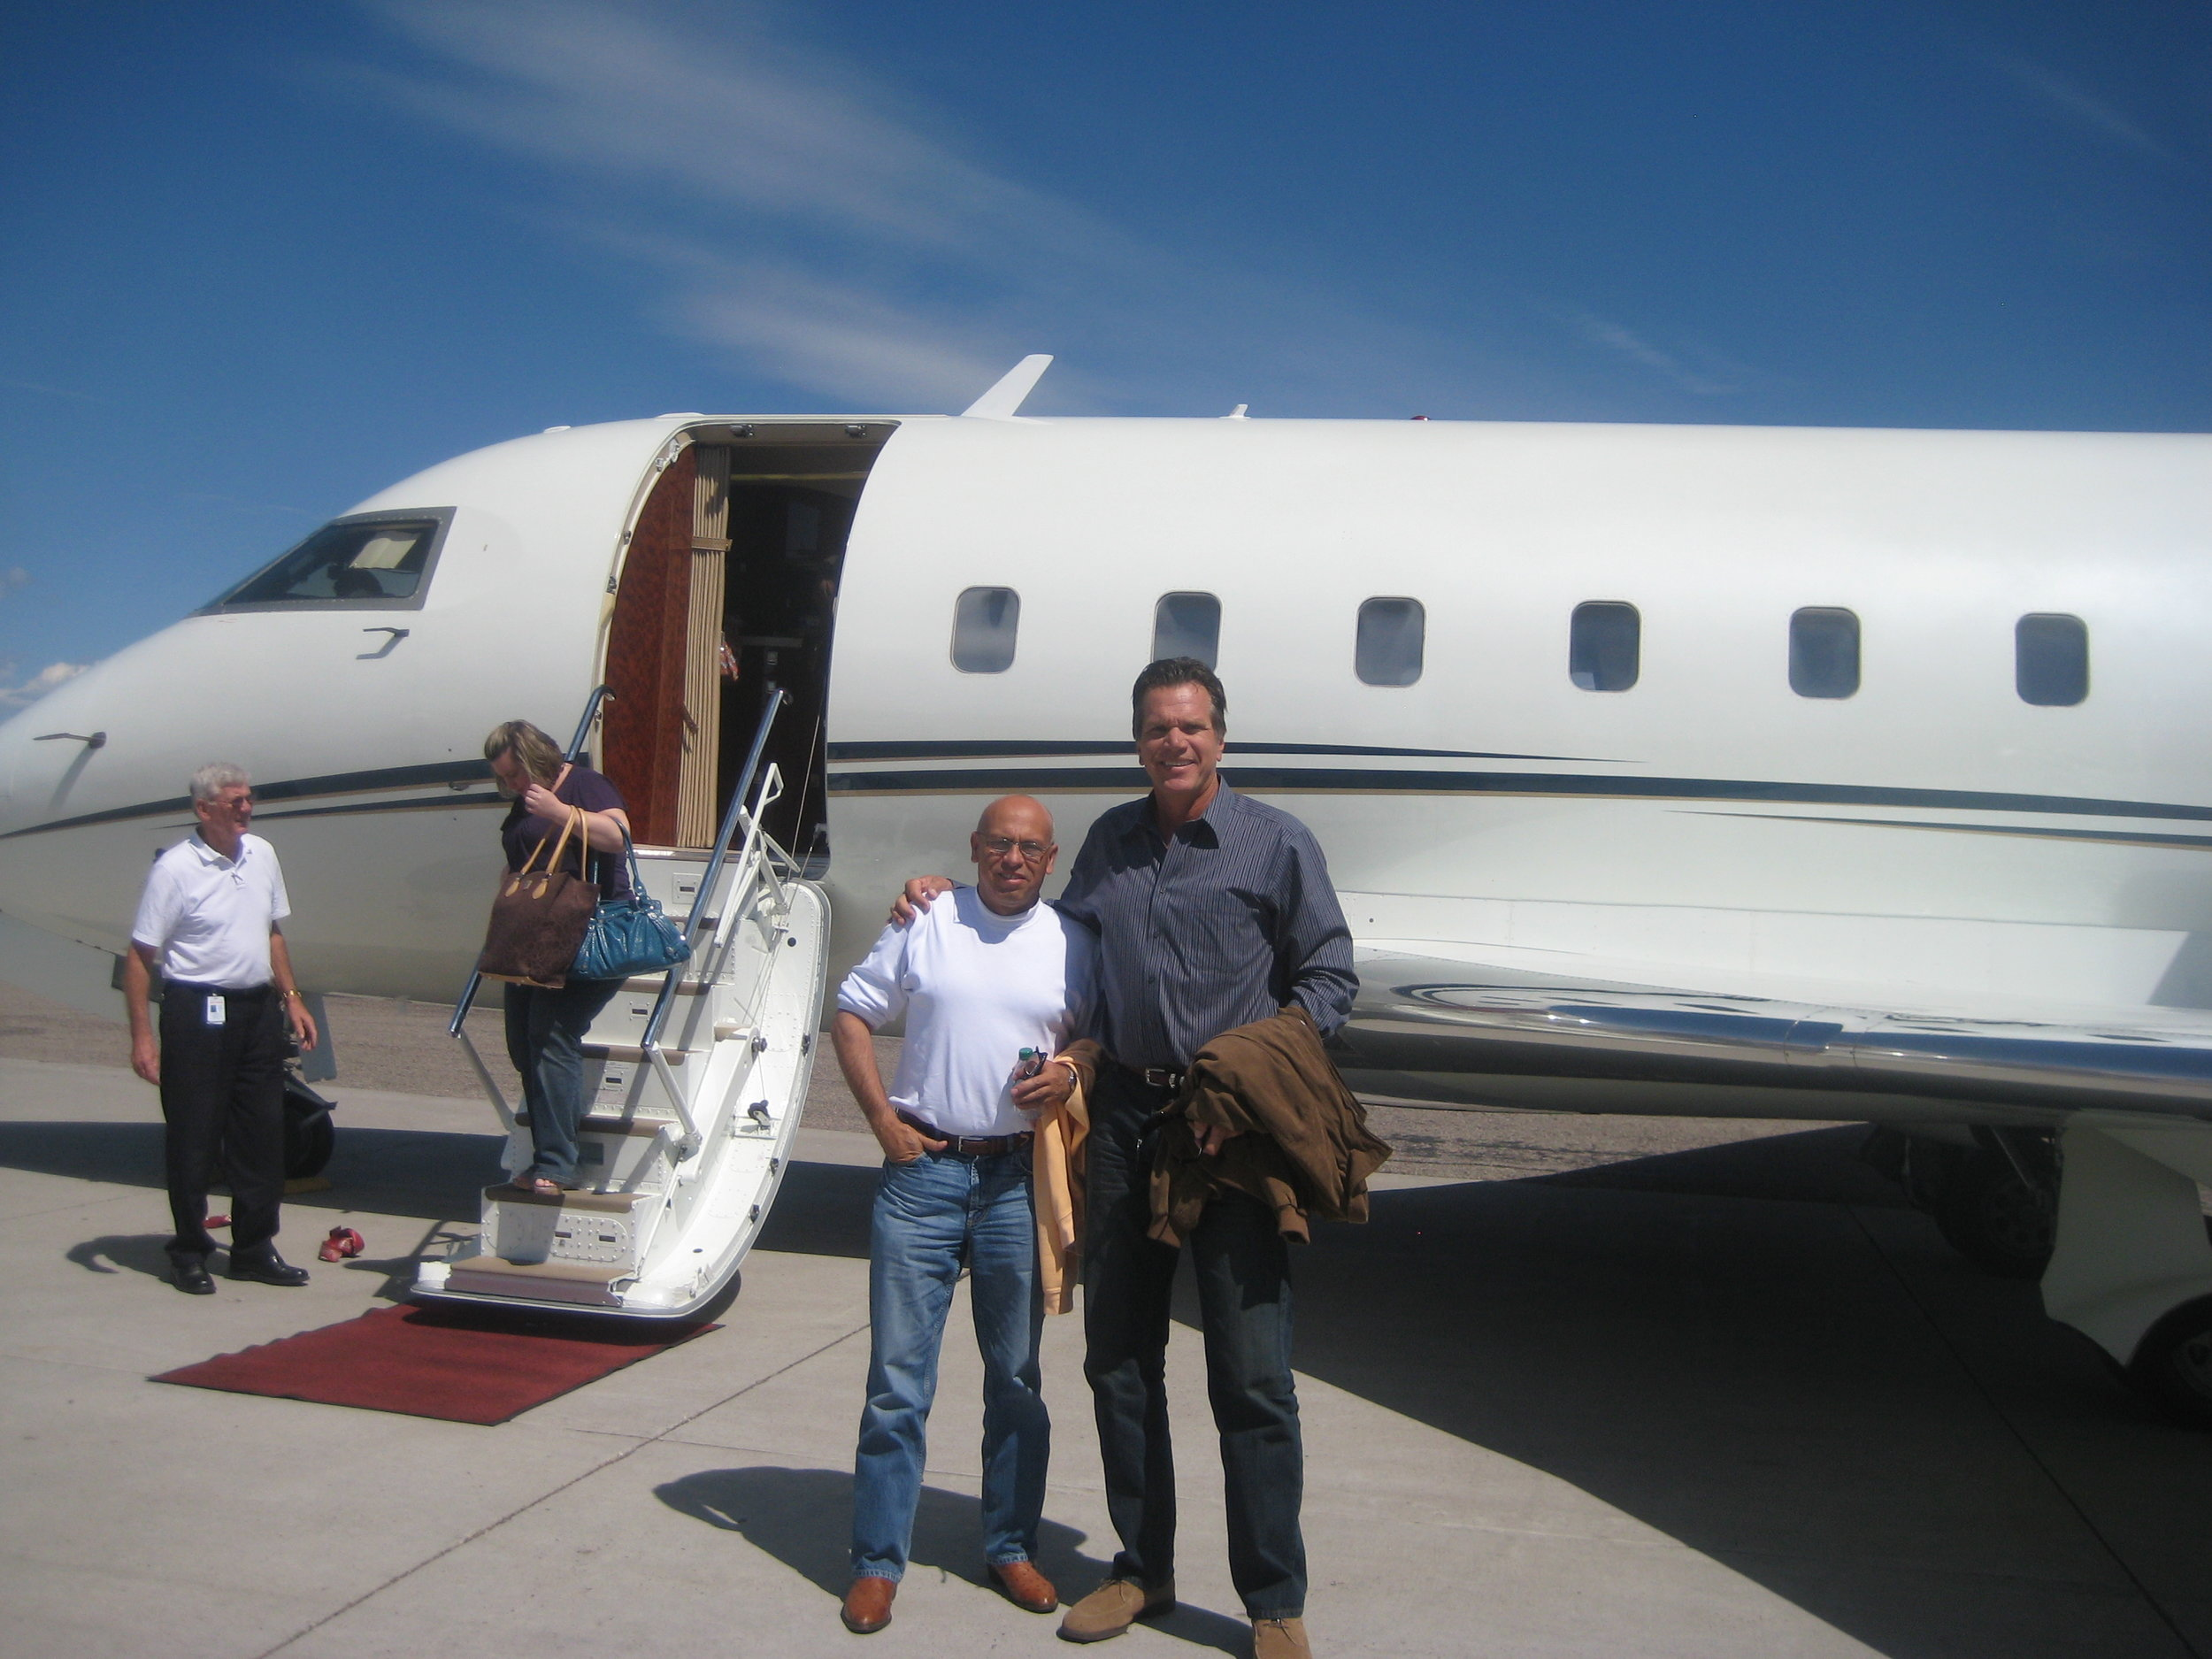 MC and Schultz wheels up to Montana with a client